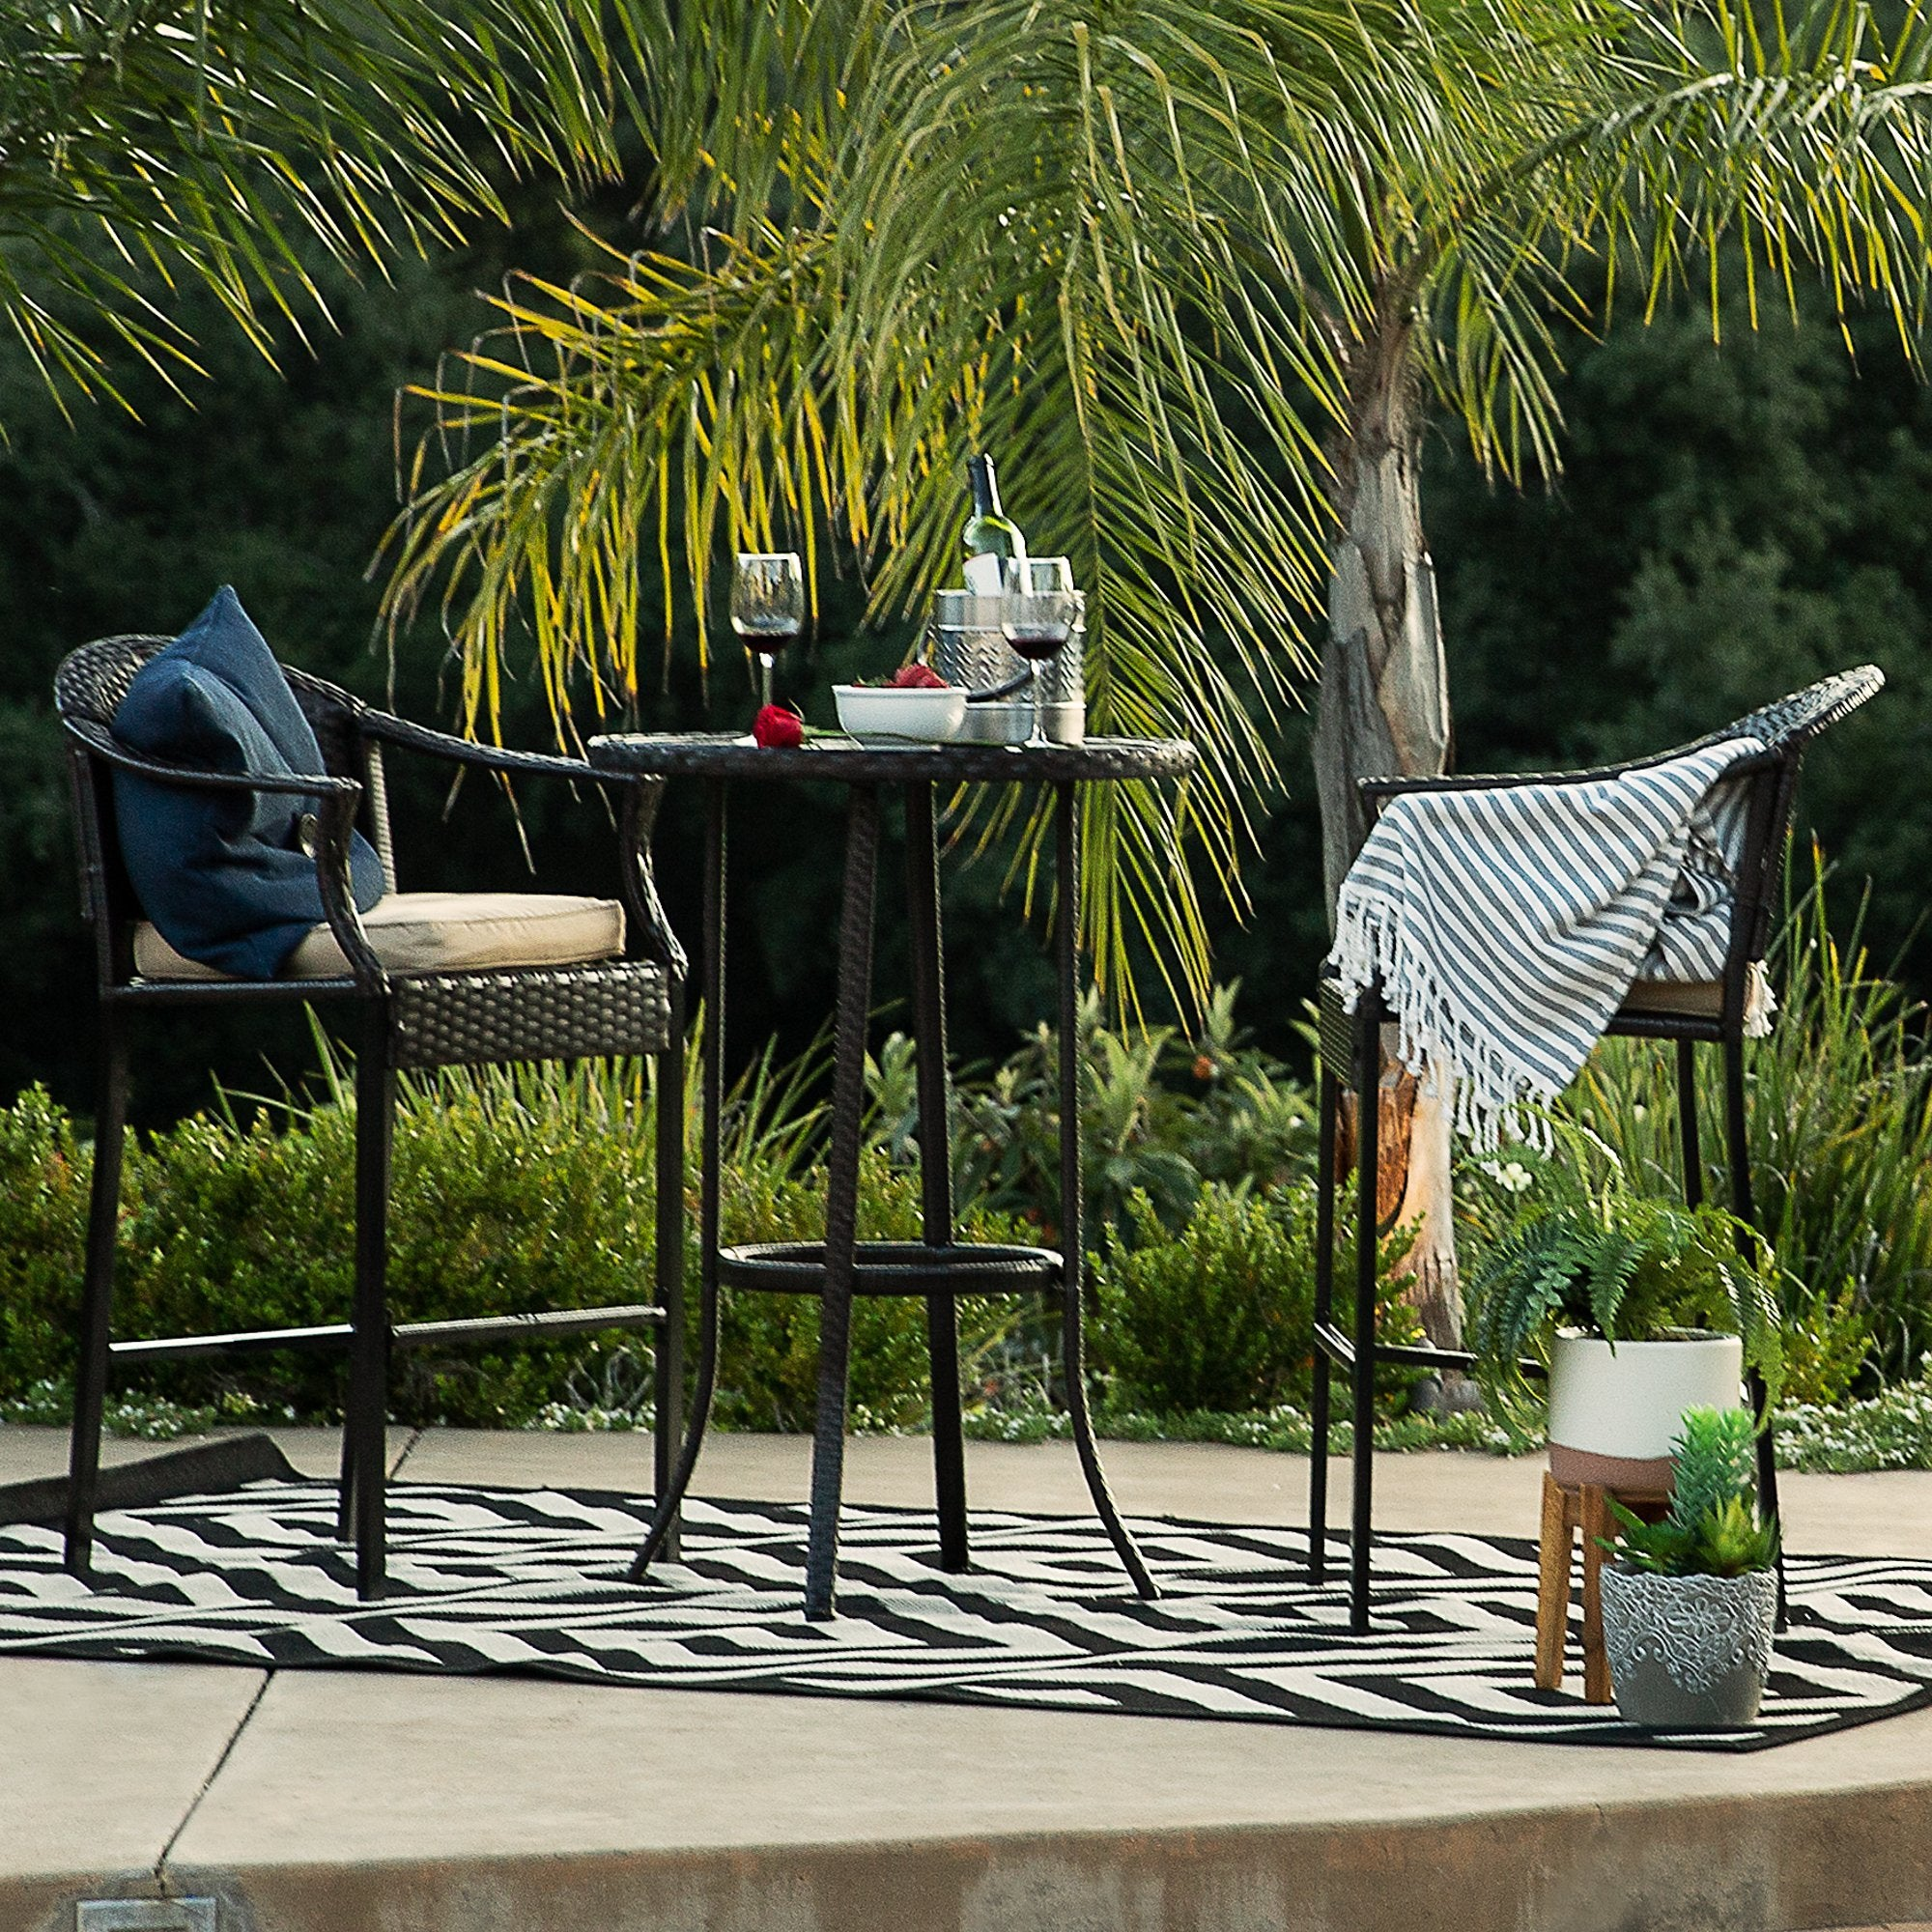 3-Piece Outdoor Wicker Table Bar Set w/ Bar Stools, Footrests, Steel Frame